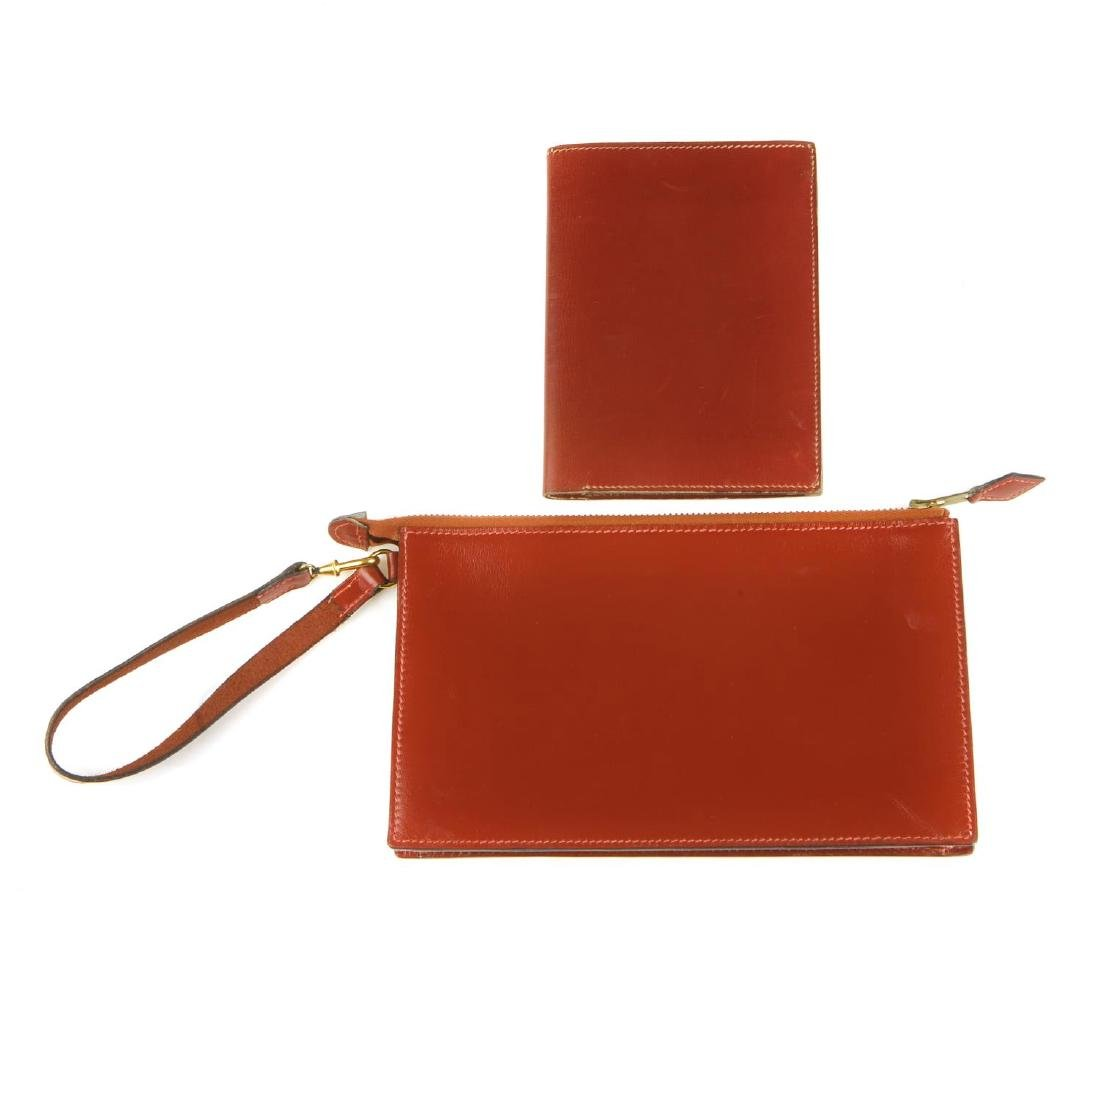 HERMÈS - a leather pouch and wallet. Both crafted from